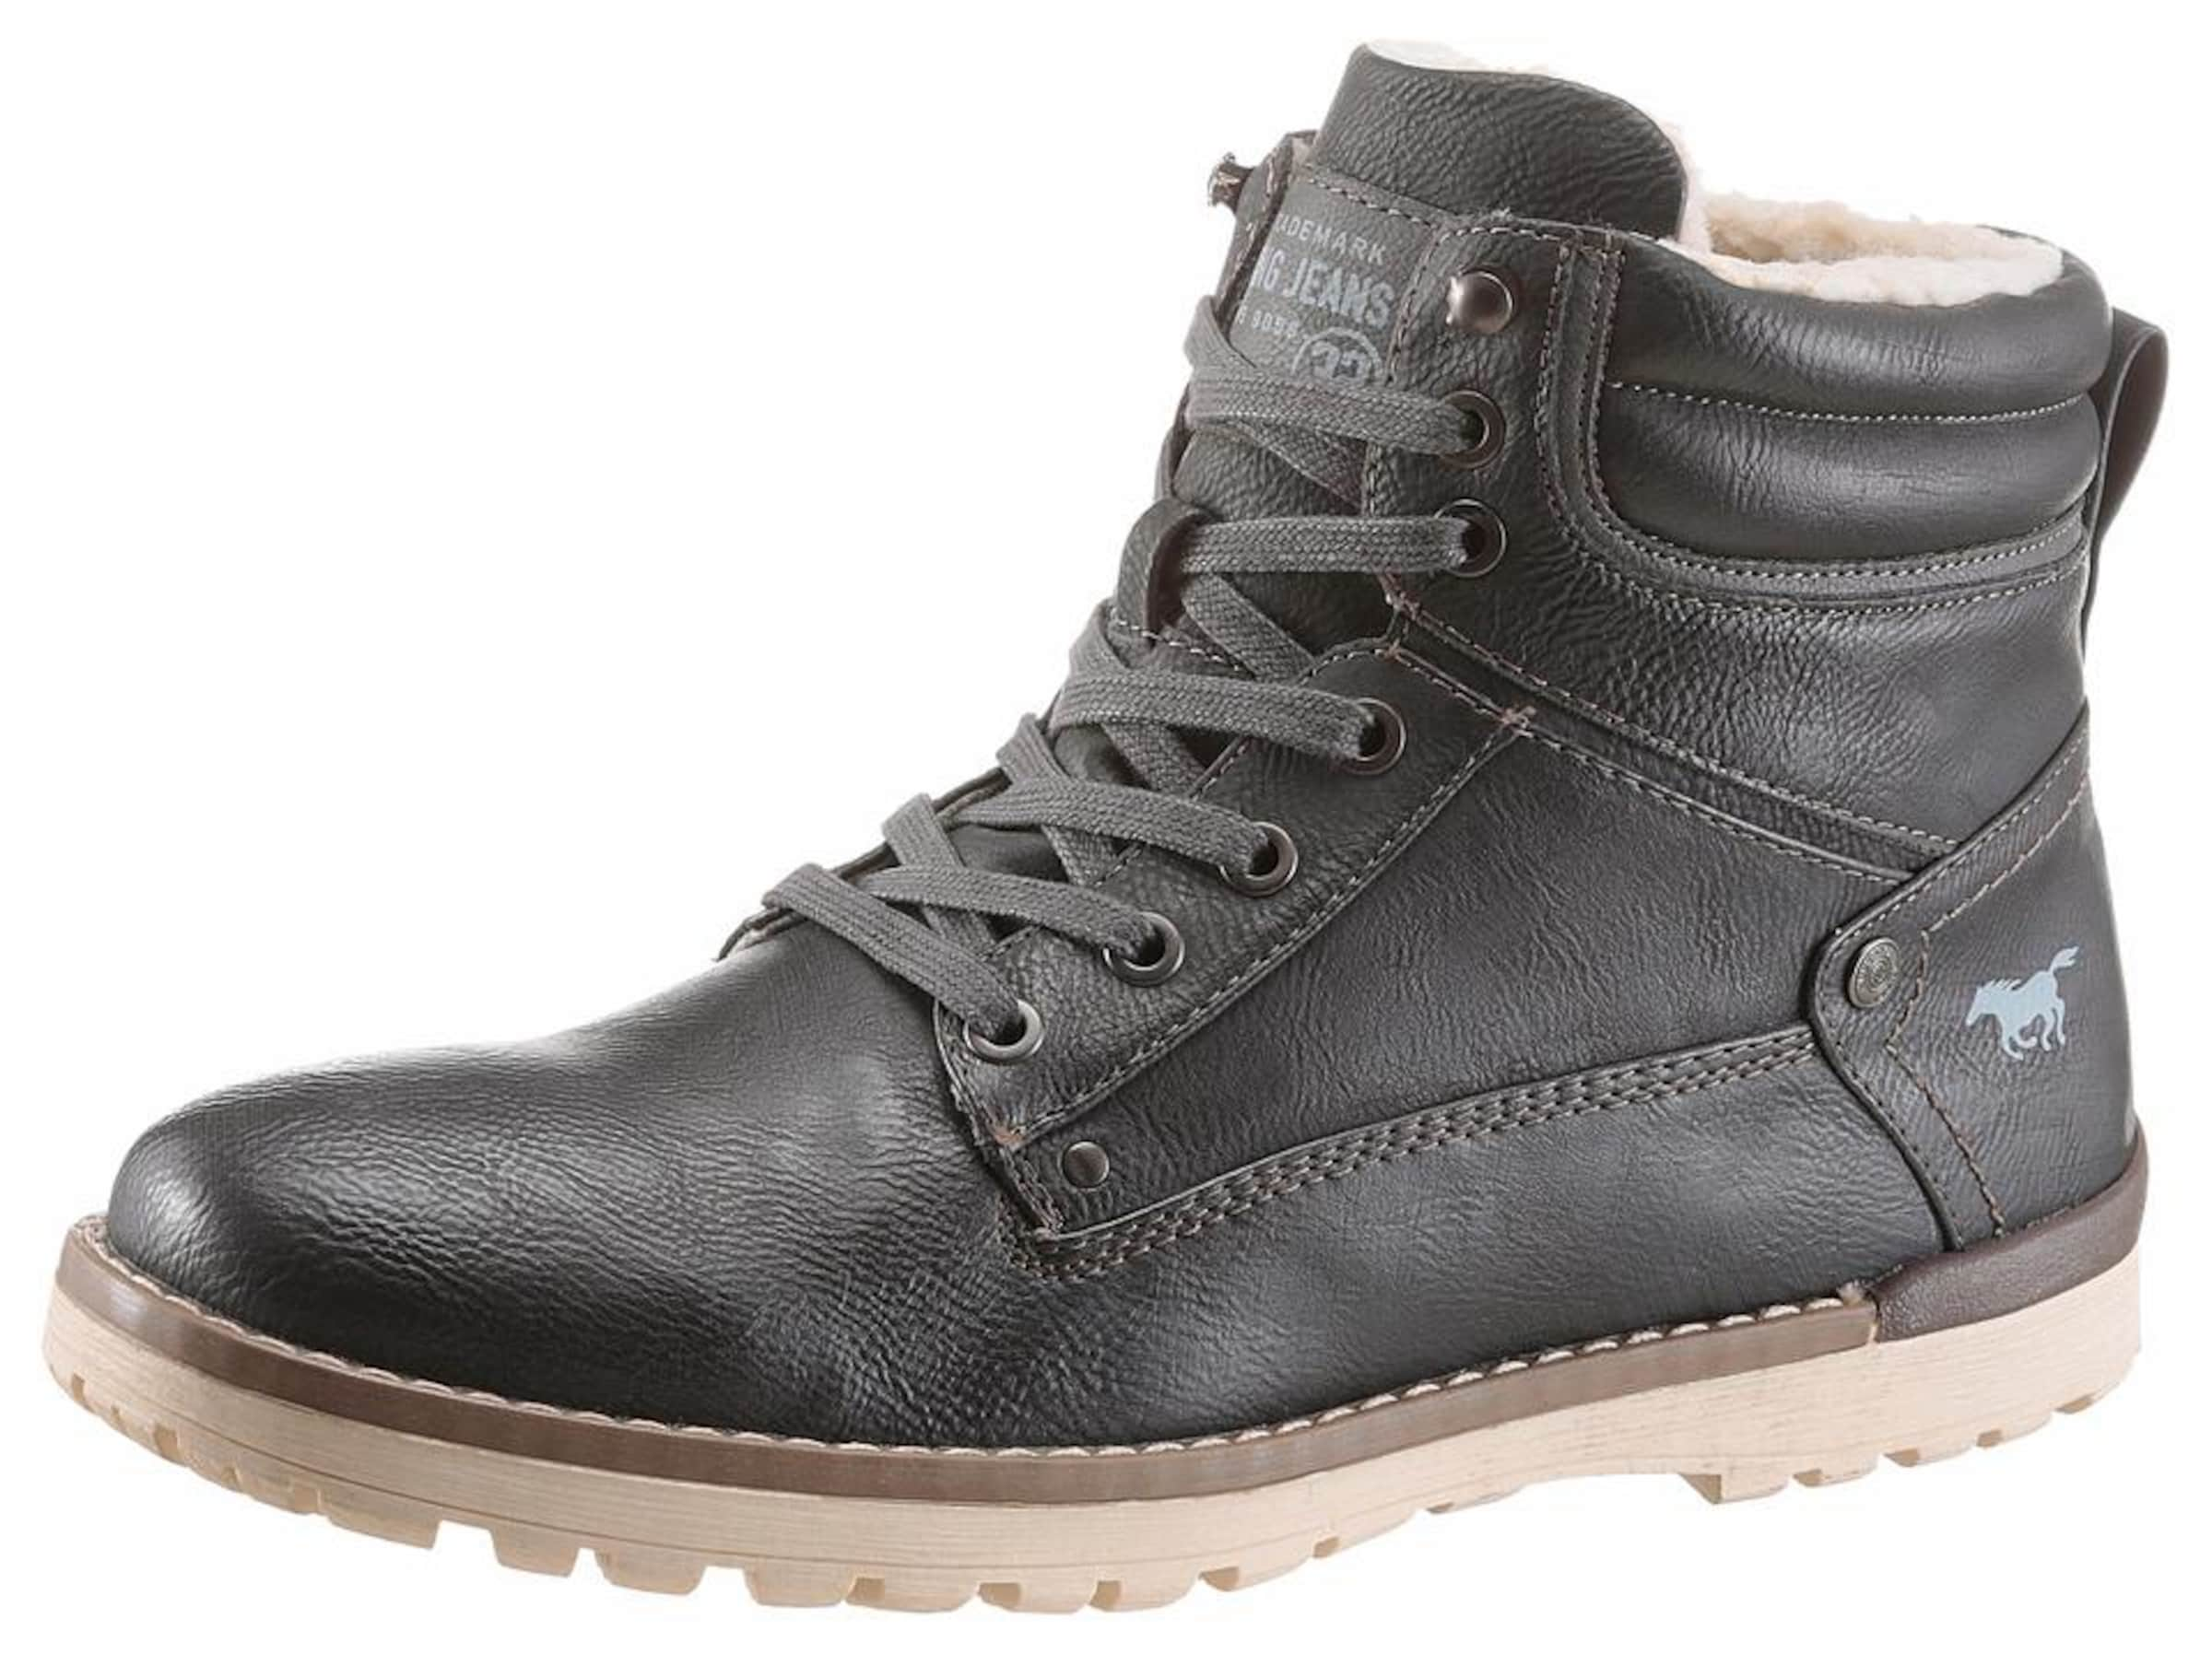 À Mustang Lacets Bottines En Anthracite xBdoCe